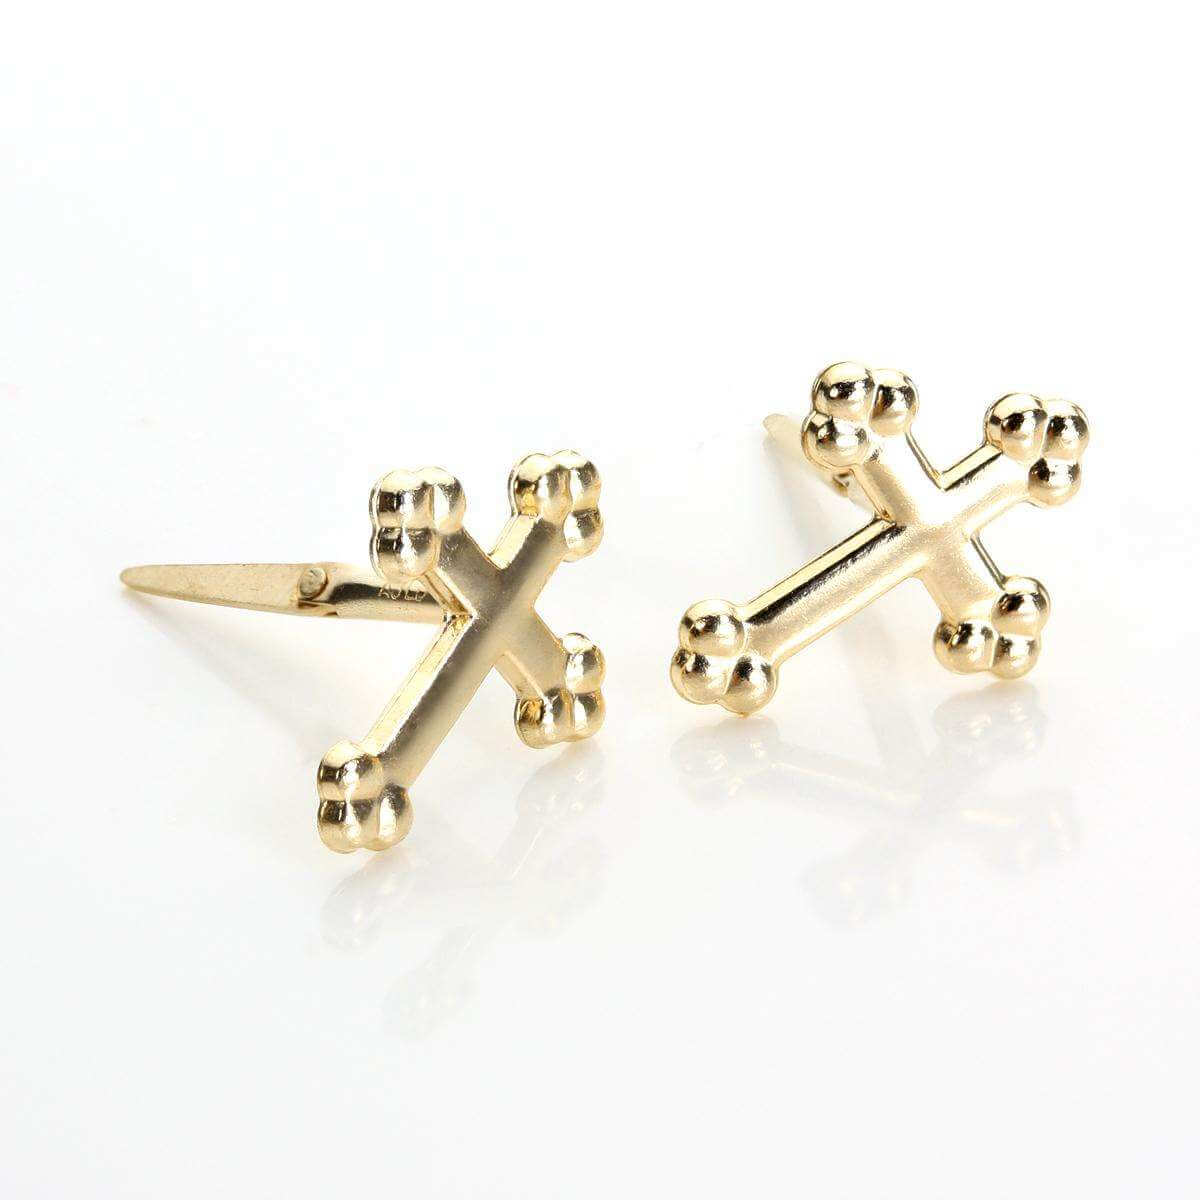 Andralok 9ct Yellow Gold Cross Stud Earrings